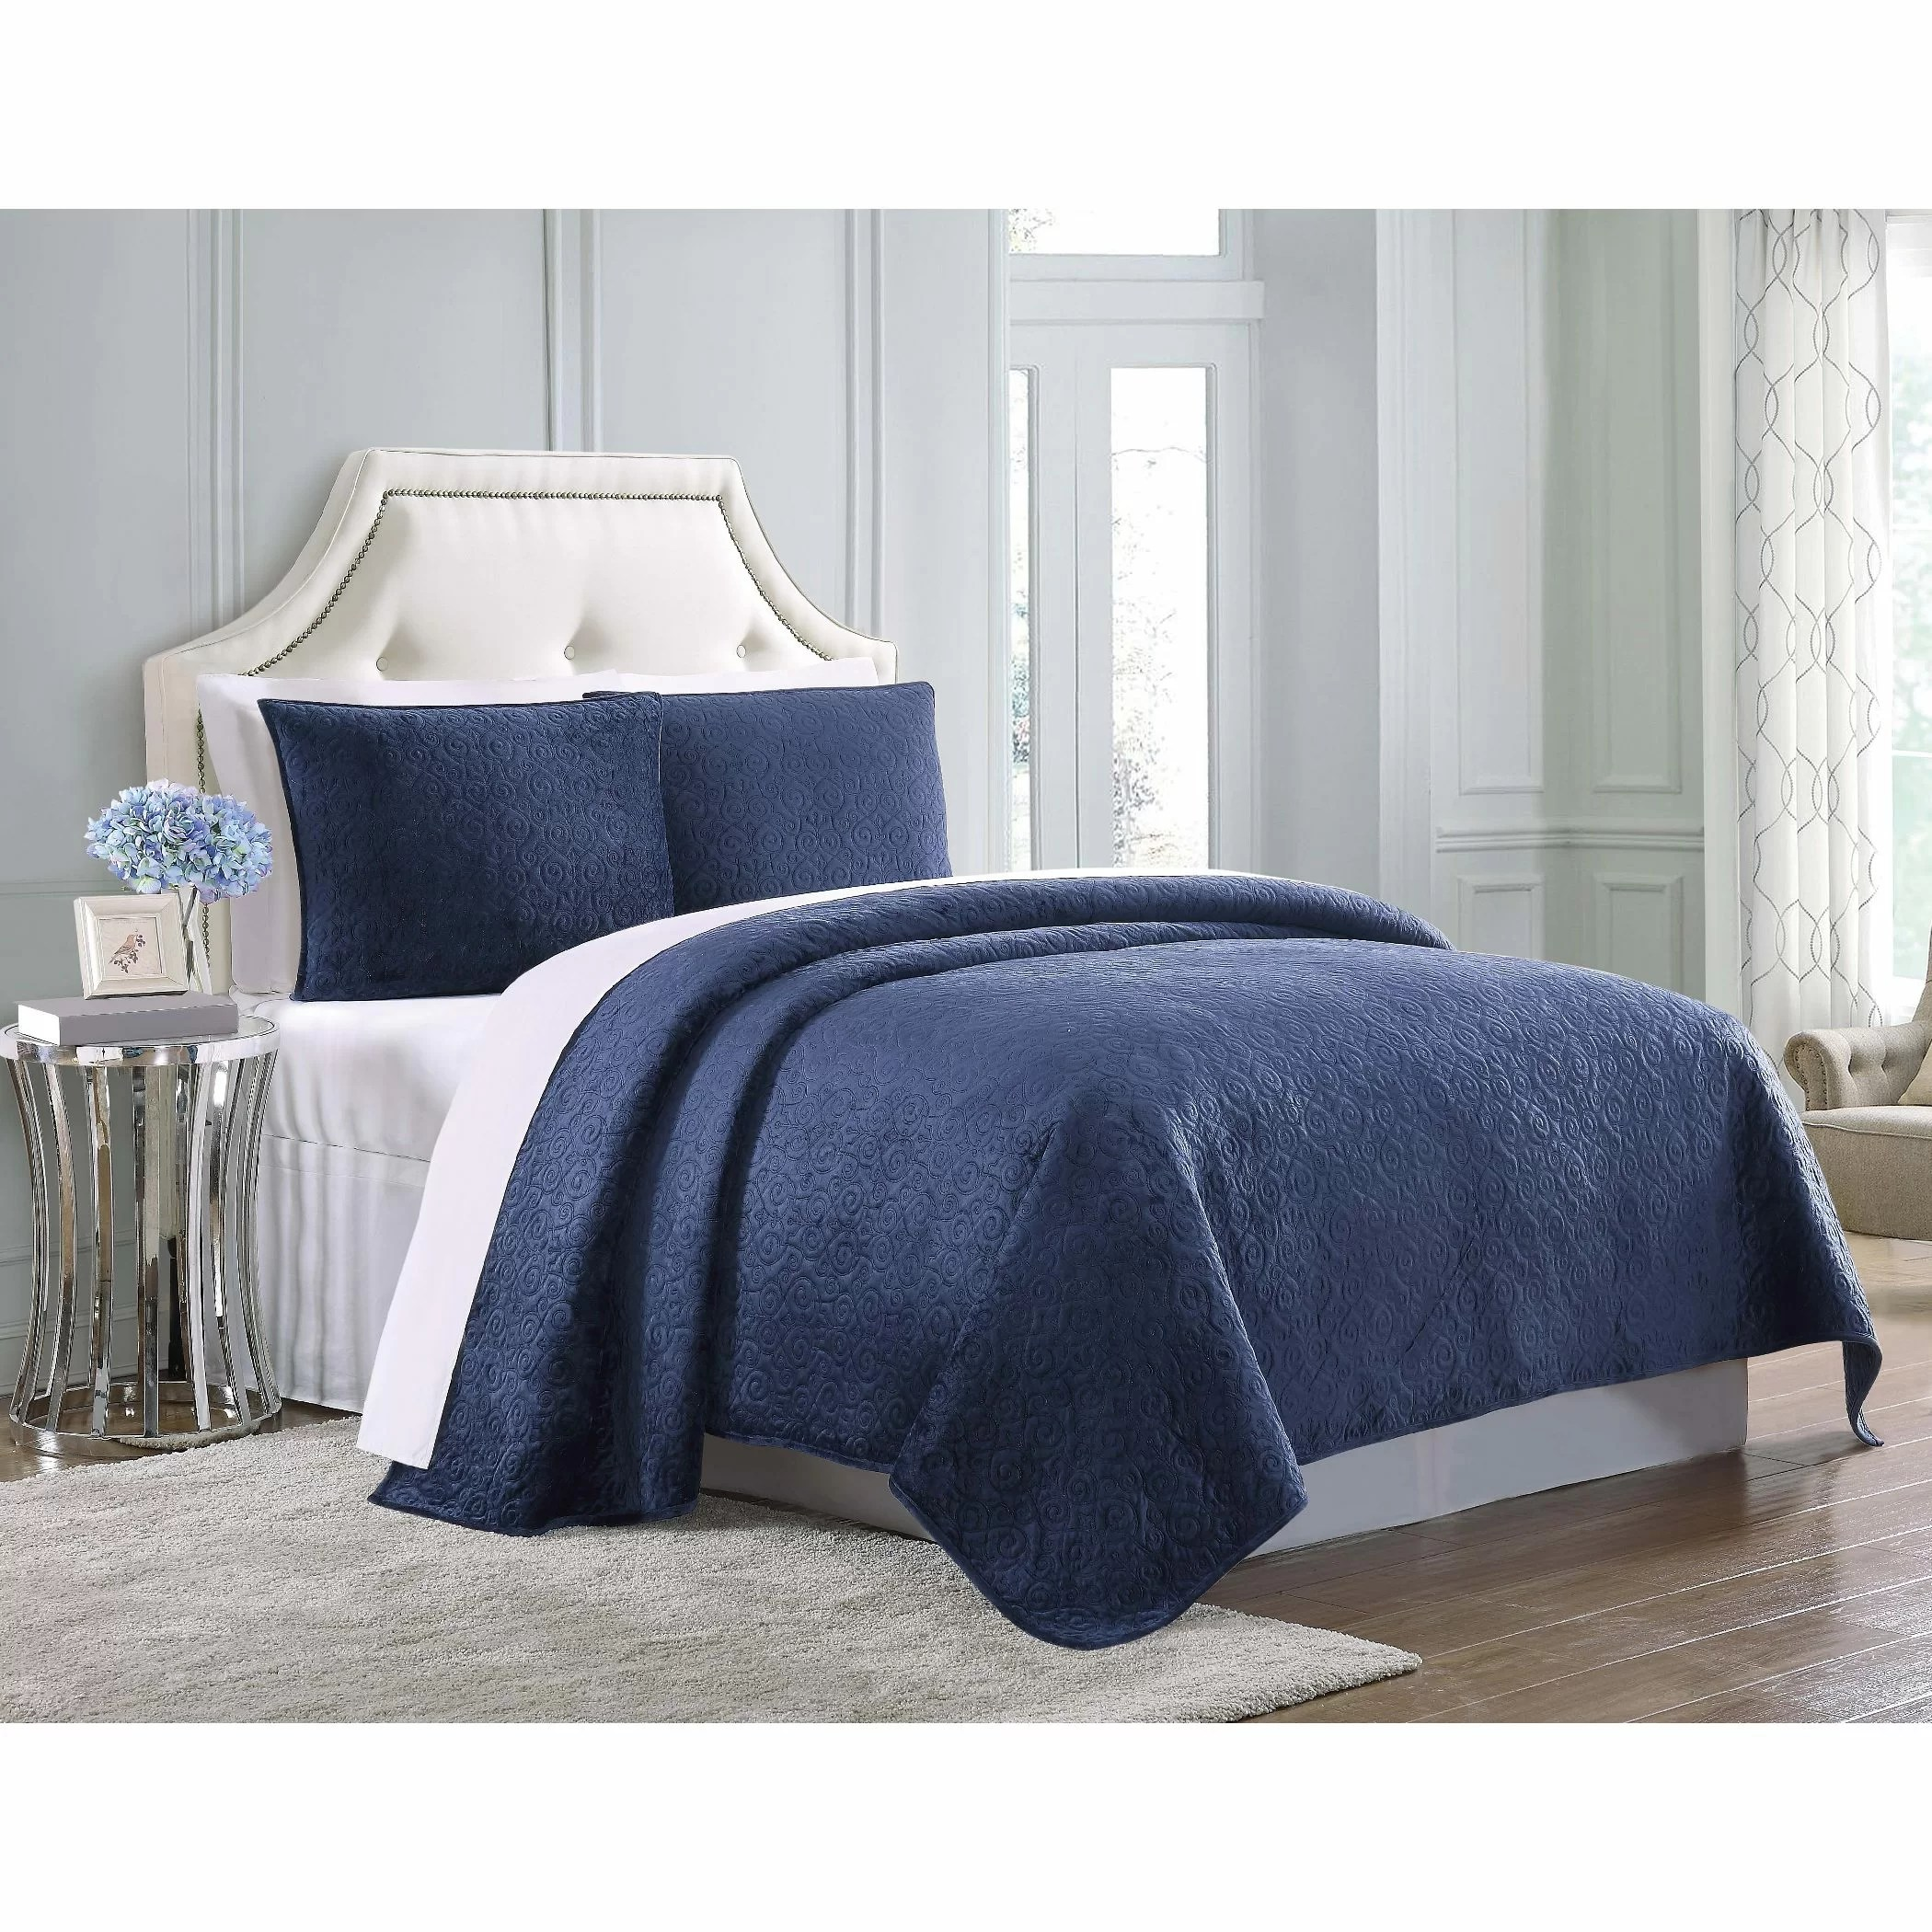 Single Coverlet Regent Single Coverlet